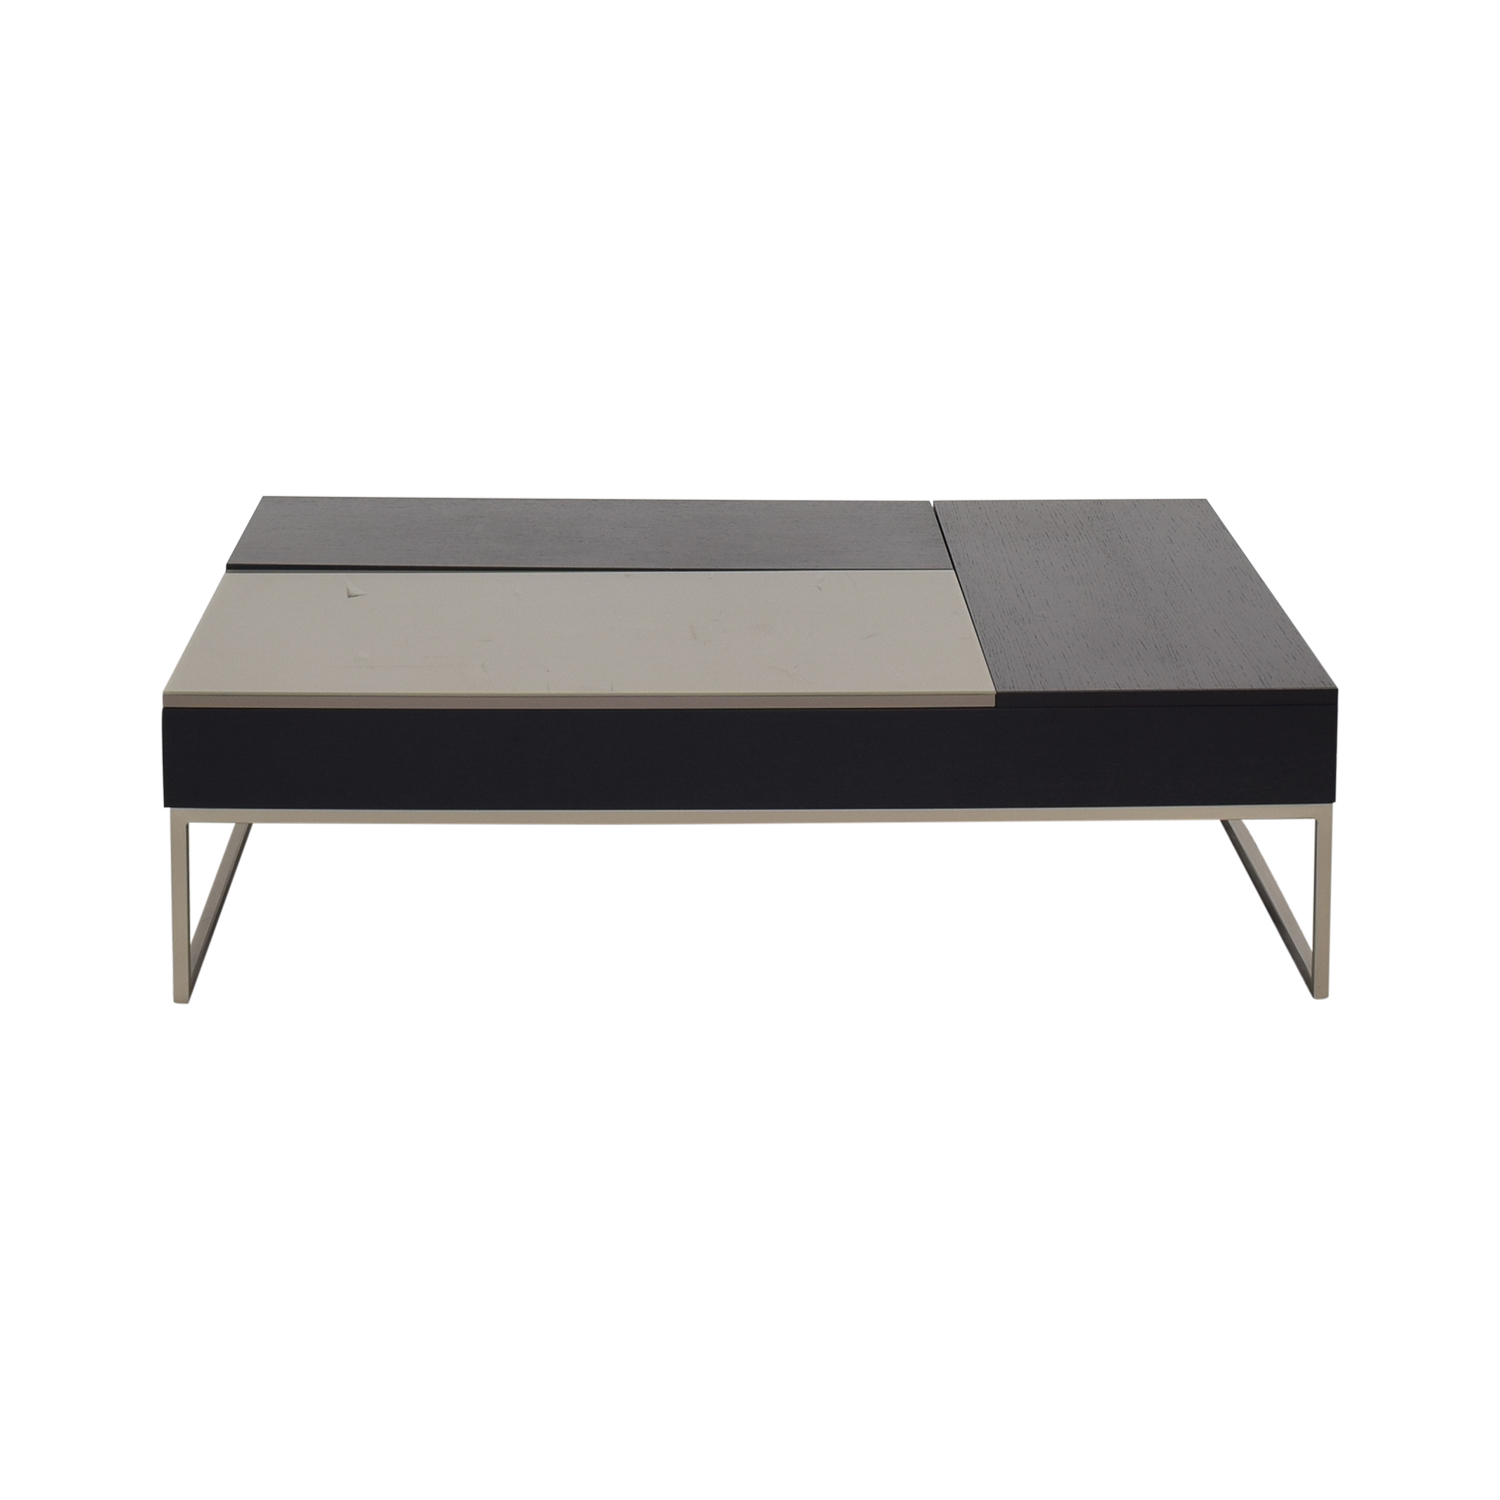 BoConcept BoConcept Chiva Functional Storage Coffee Table Coffee Tables